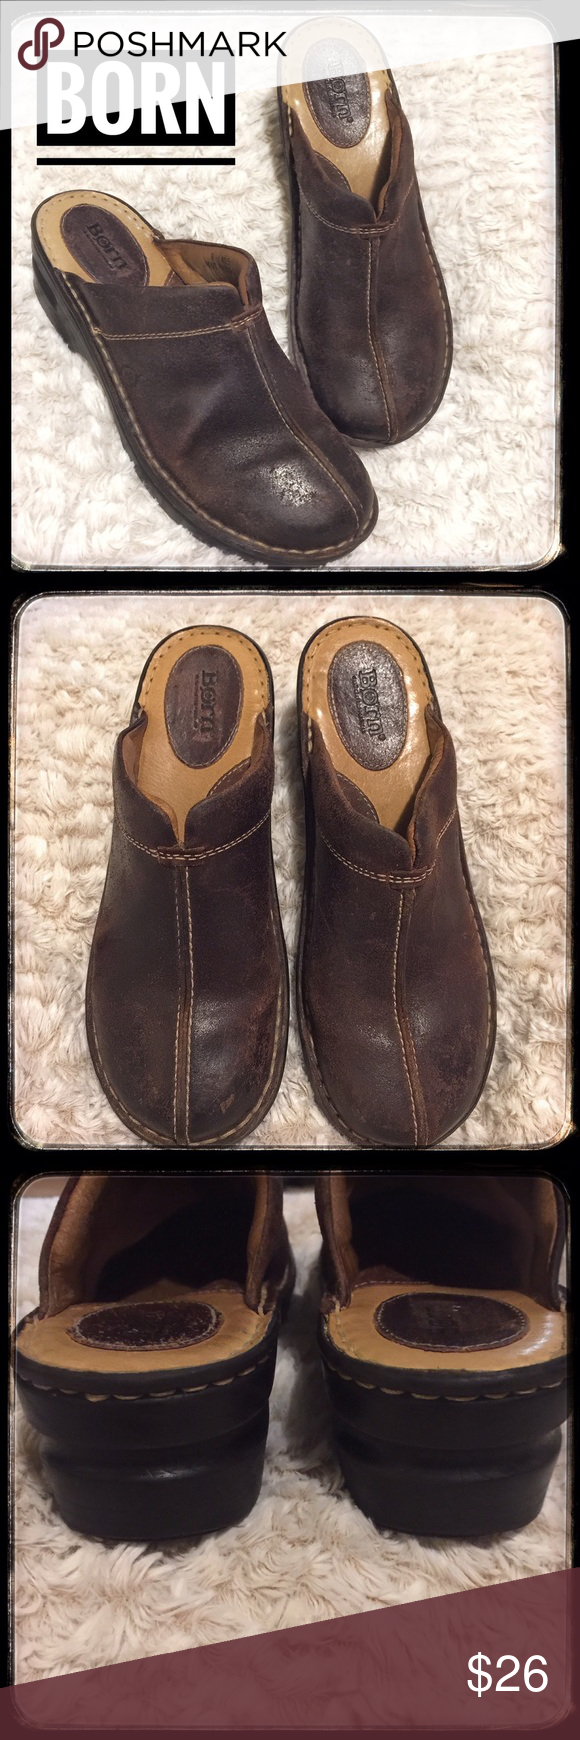 Born Distressed Leather Mules Clogs S9